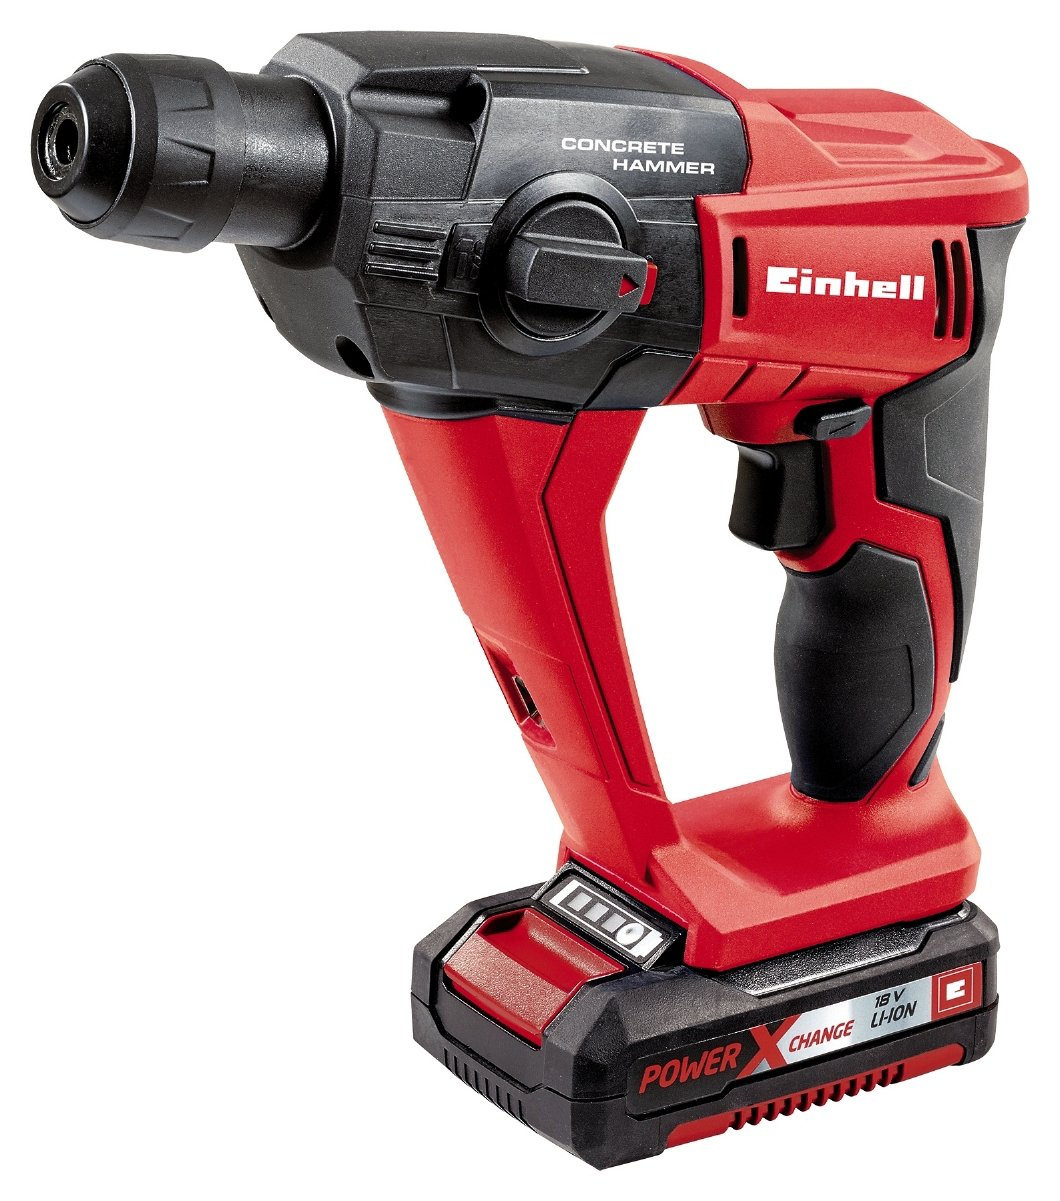 Einhell Power X Change Rotary Hammer Kit